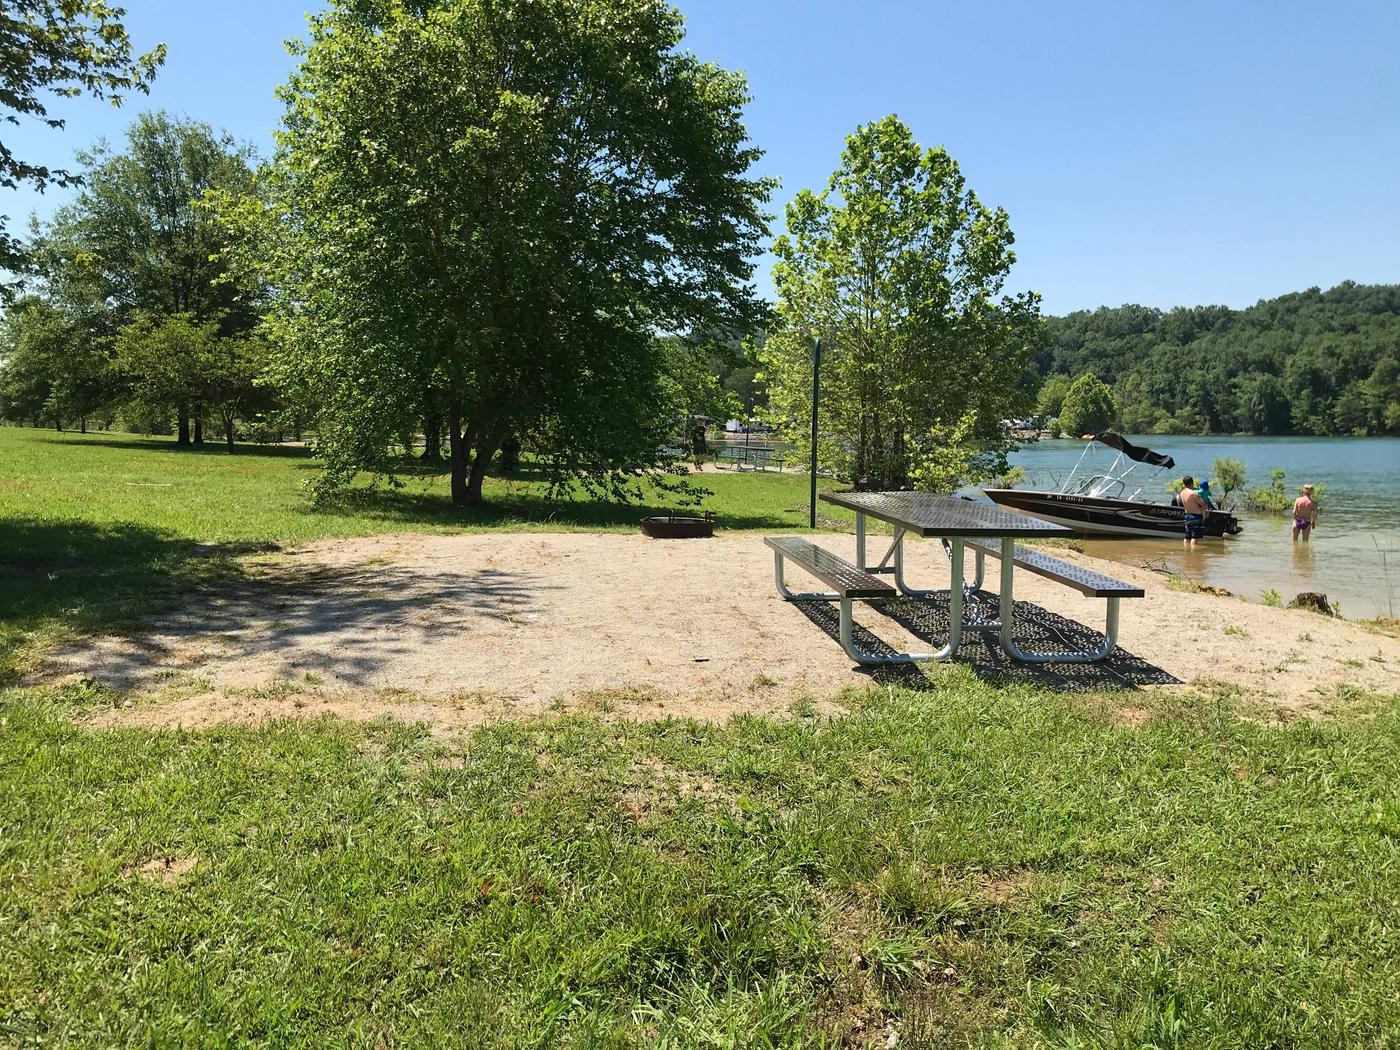 LILLYDALE CAMPGROUND SITE # 112